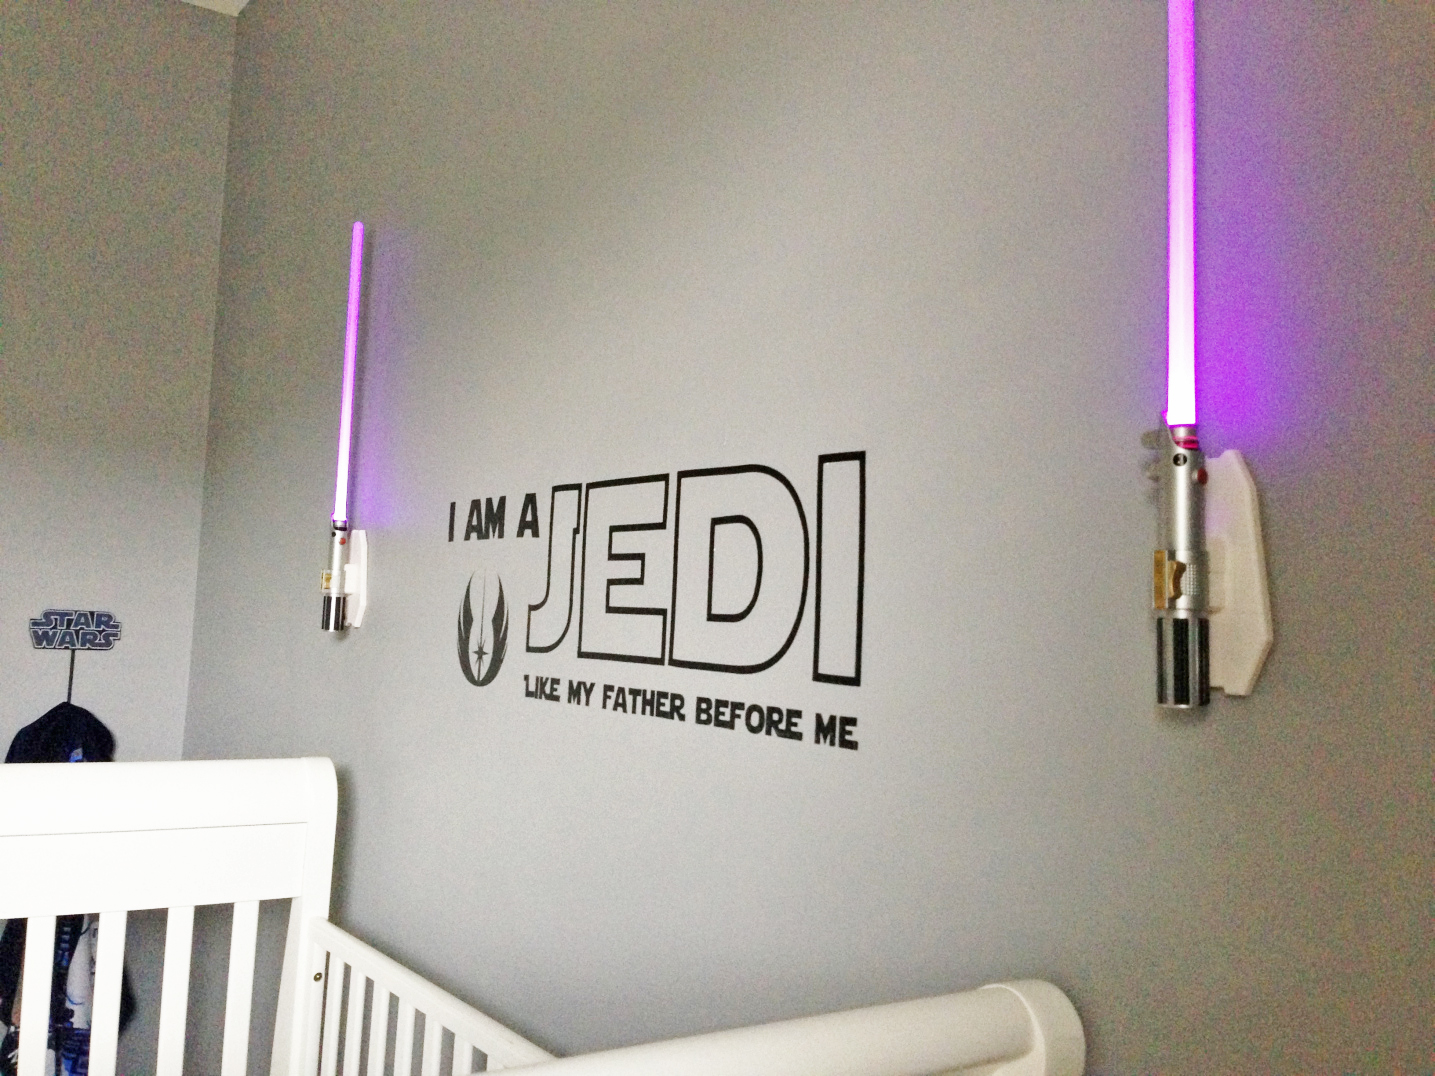 These pink Jedi light sabers are one-of-a-kind for this crib room.